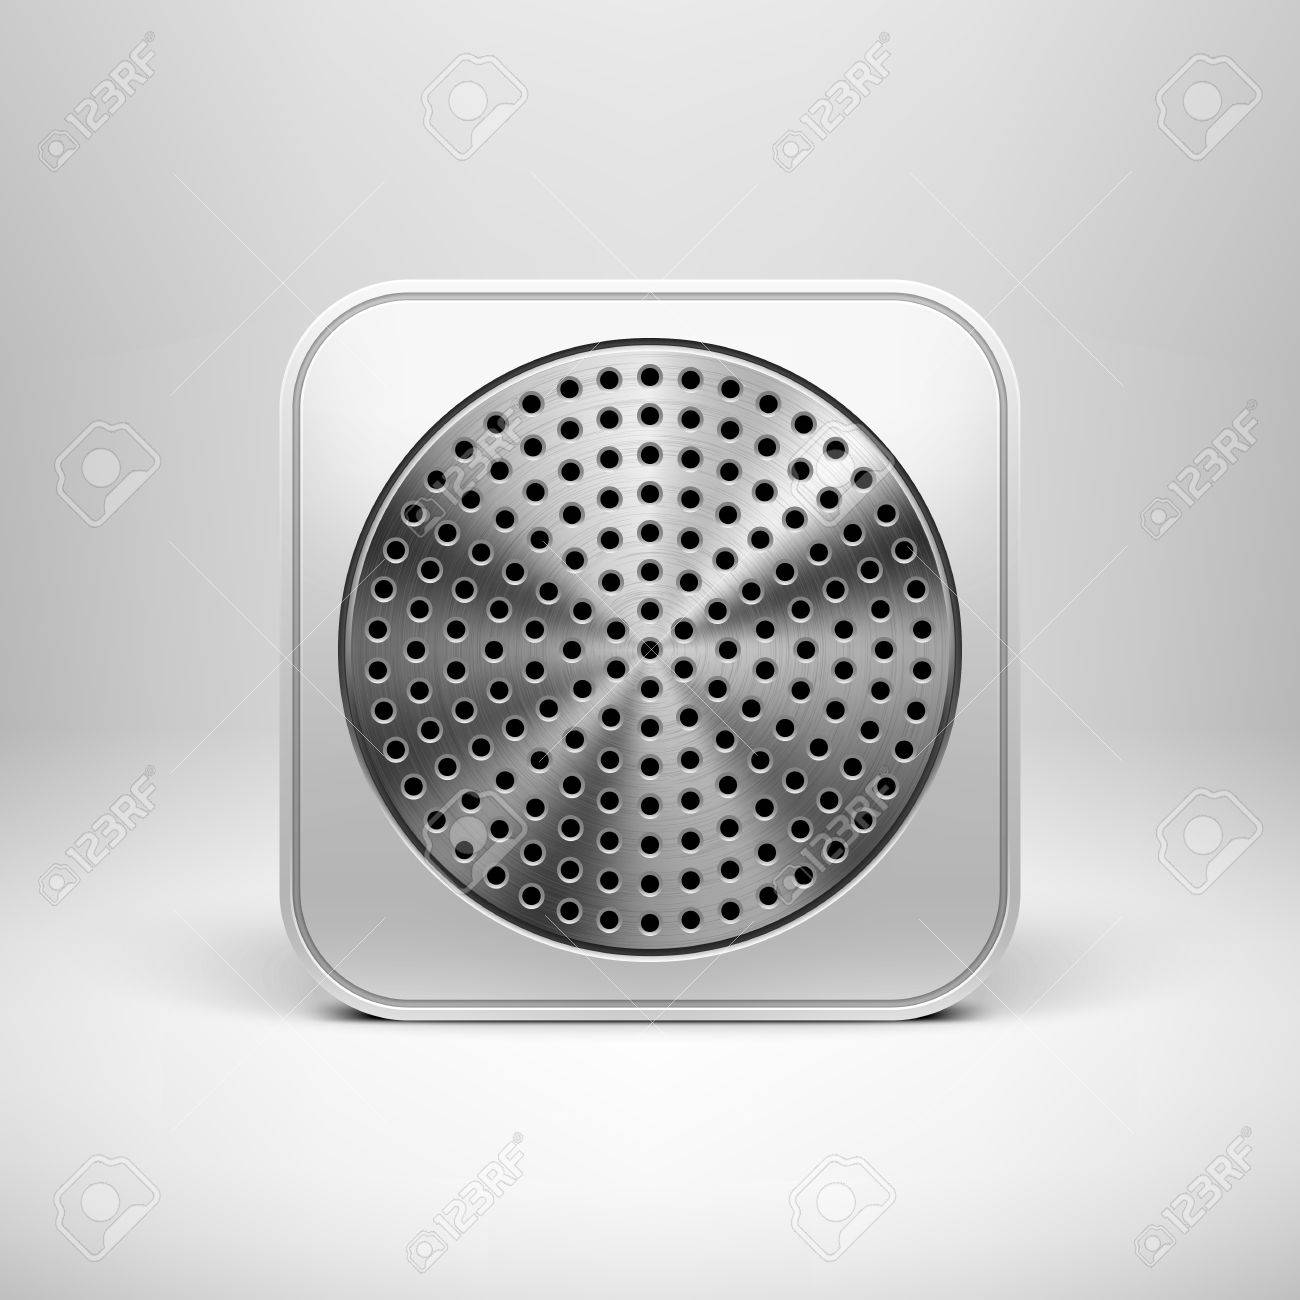 Technology app icon  button  blank template with circle perforated speaker grill texture  pattern , realistic shadow and light background for internet sites, web user interfaces  ui  and applications  app   Vector design illustration Stock Vector - 18001149